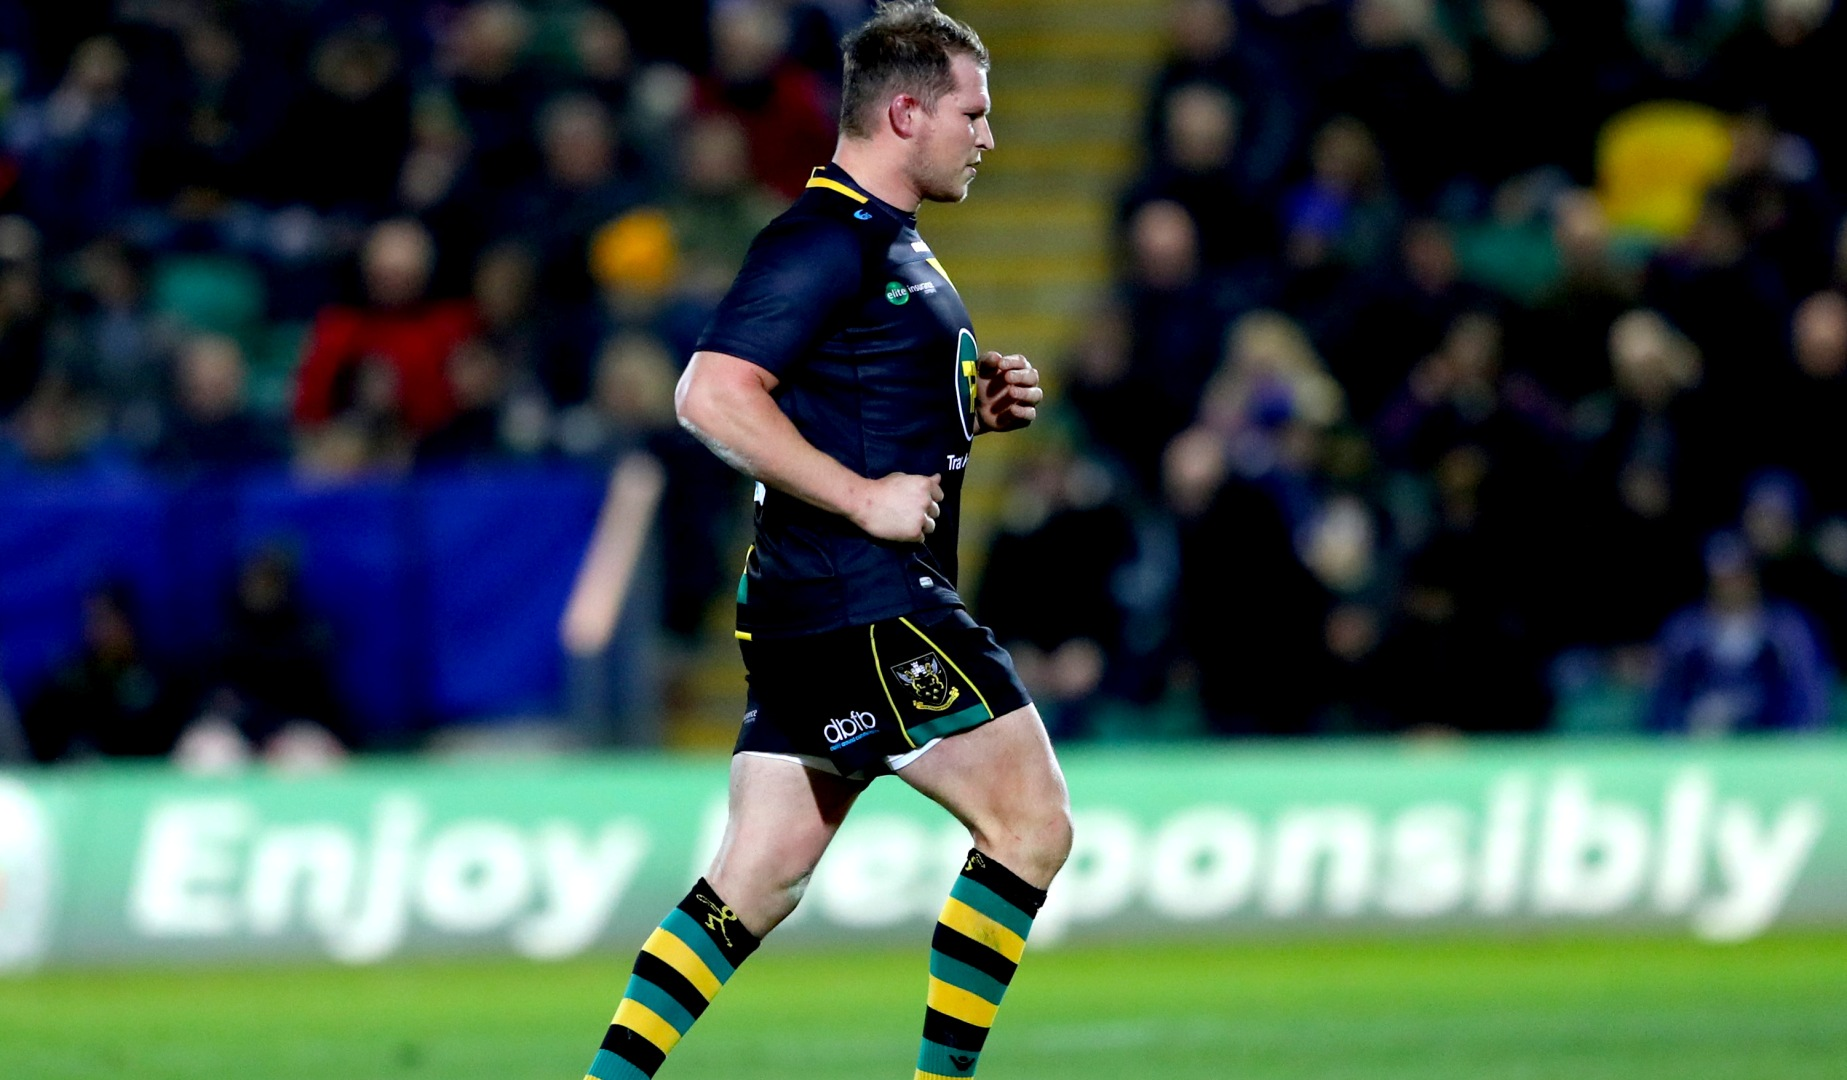 LionsWatch: Hookers impress and centres shine as squad announcement approaches